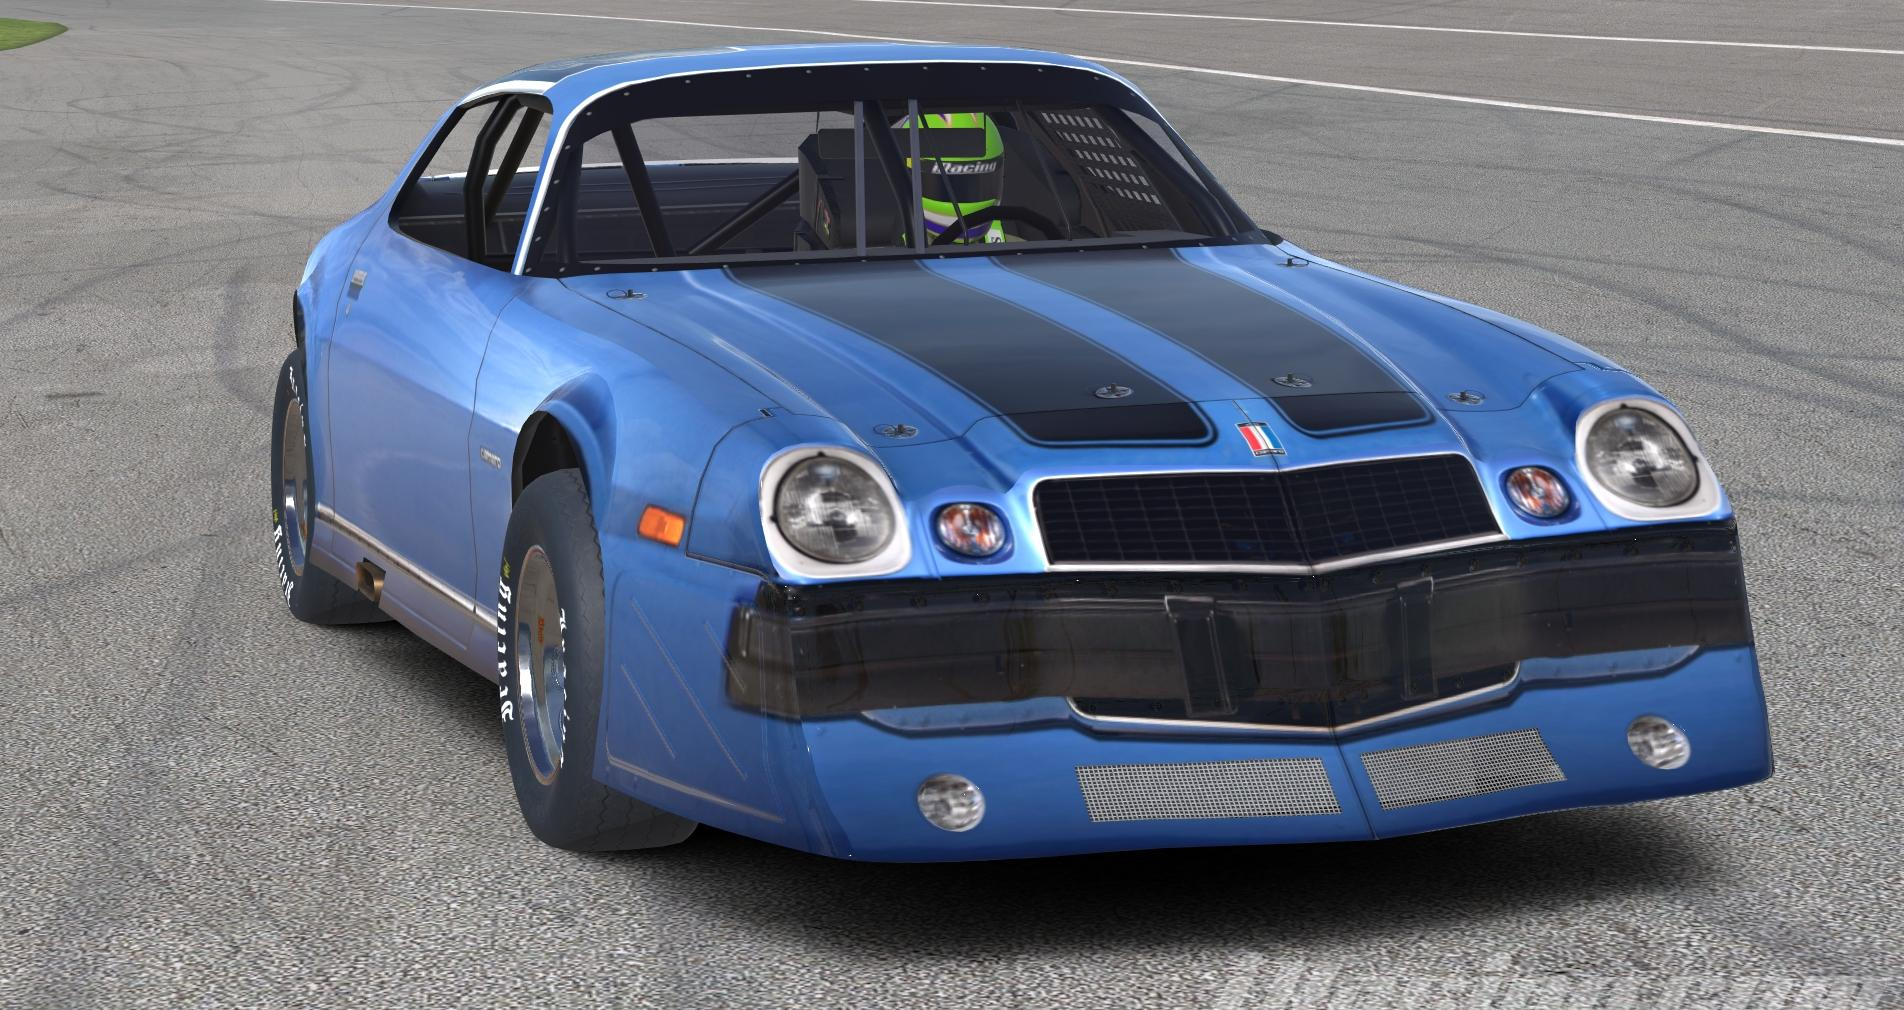 Preview of Street Stock Camaro by Don Craig